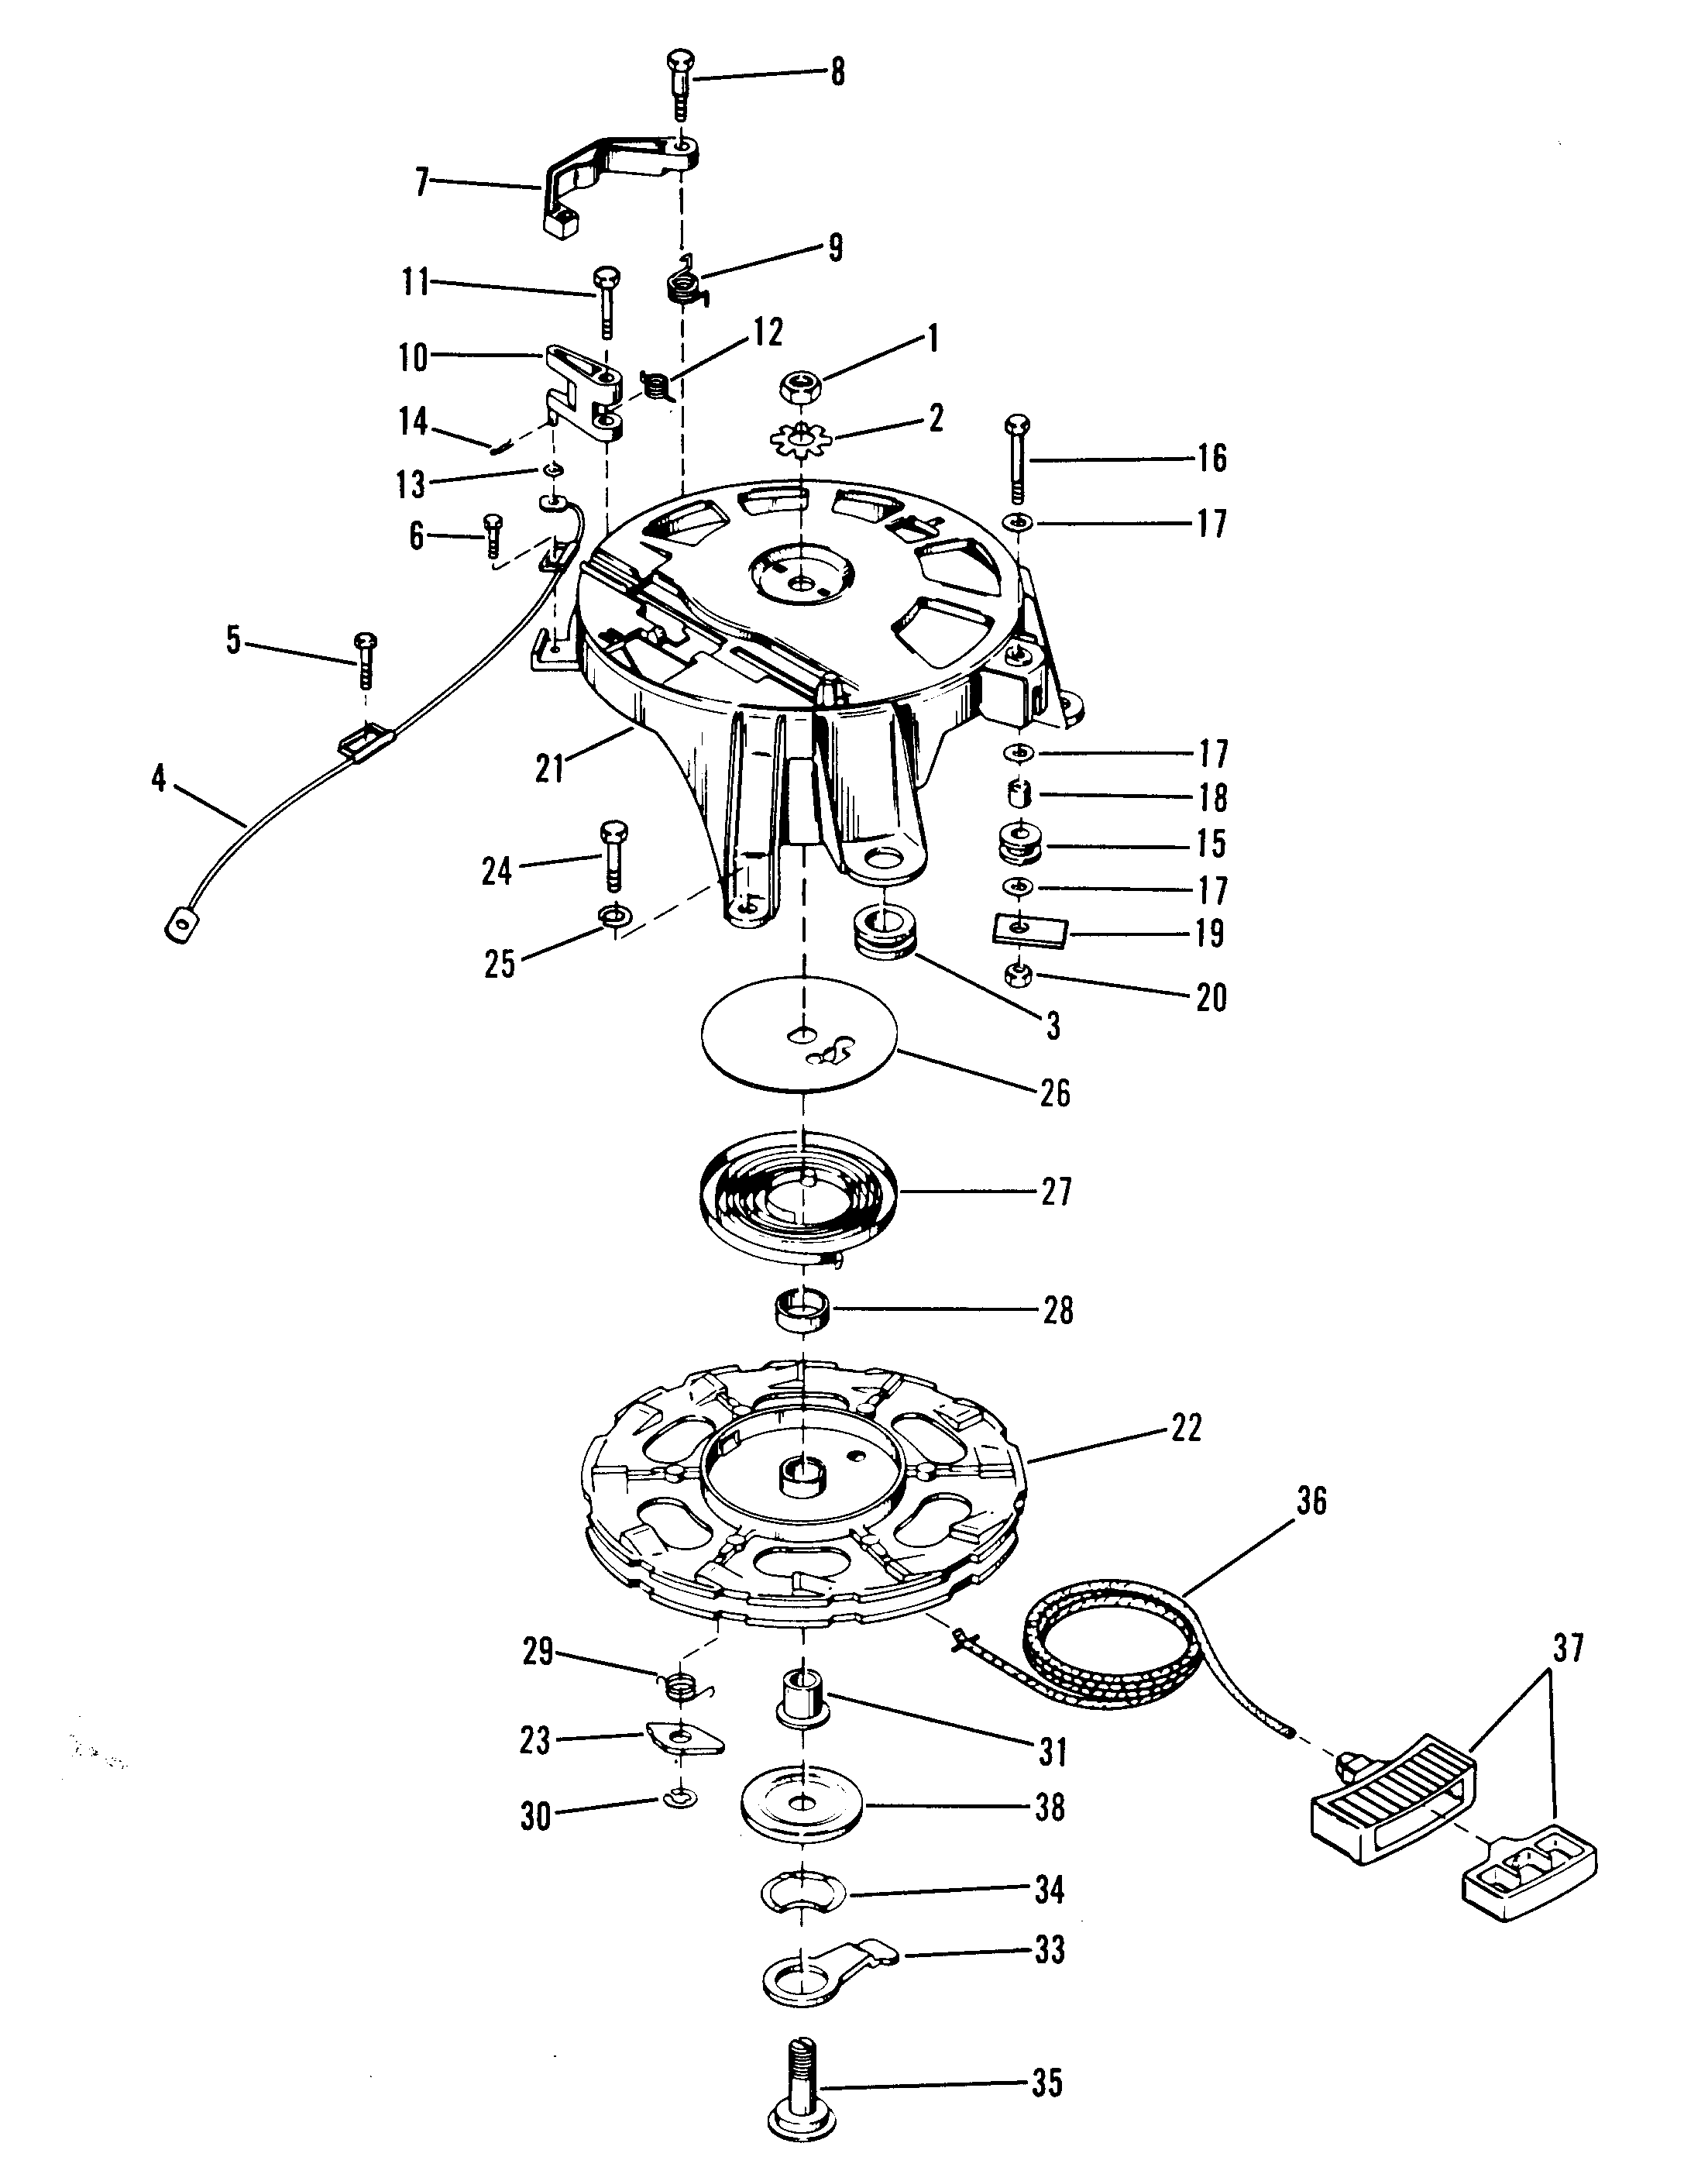 Mercury 9 8 7127388 Up Electric Components Outboard Stroke209cc 0r042475 Carburetor Diagram And 35 0b110789 Starter Rewind